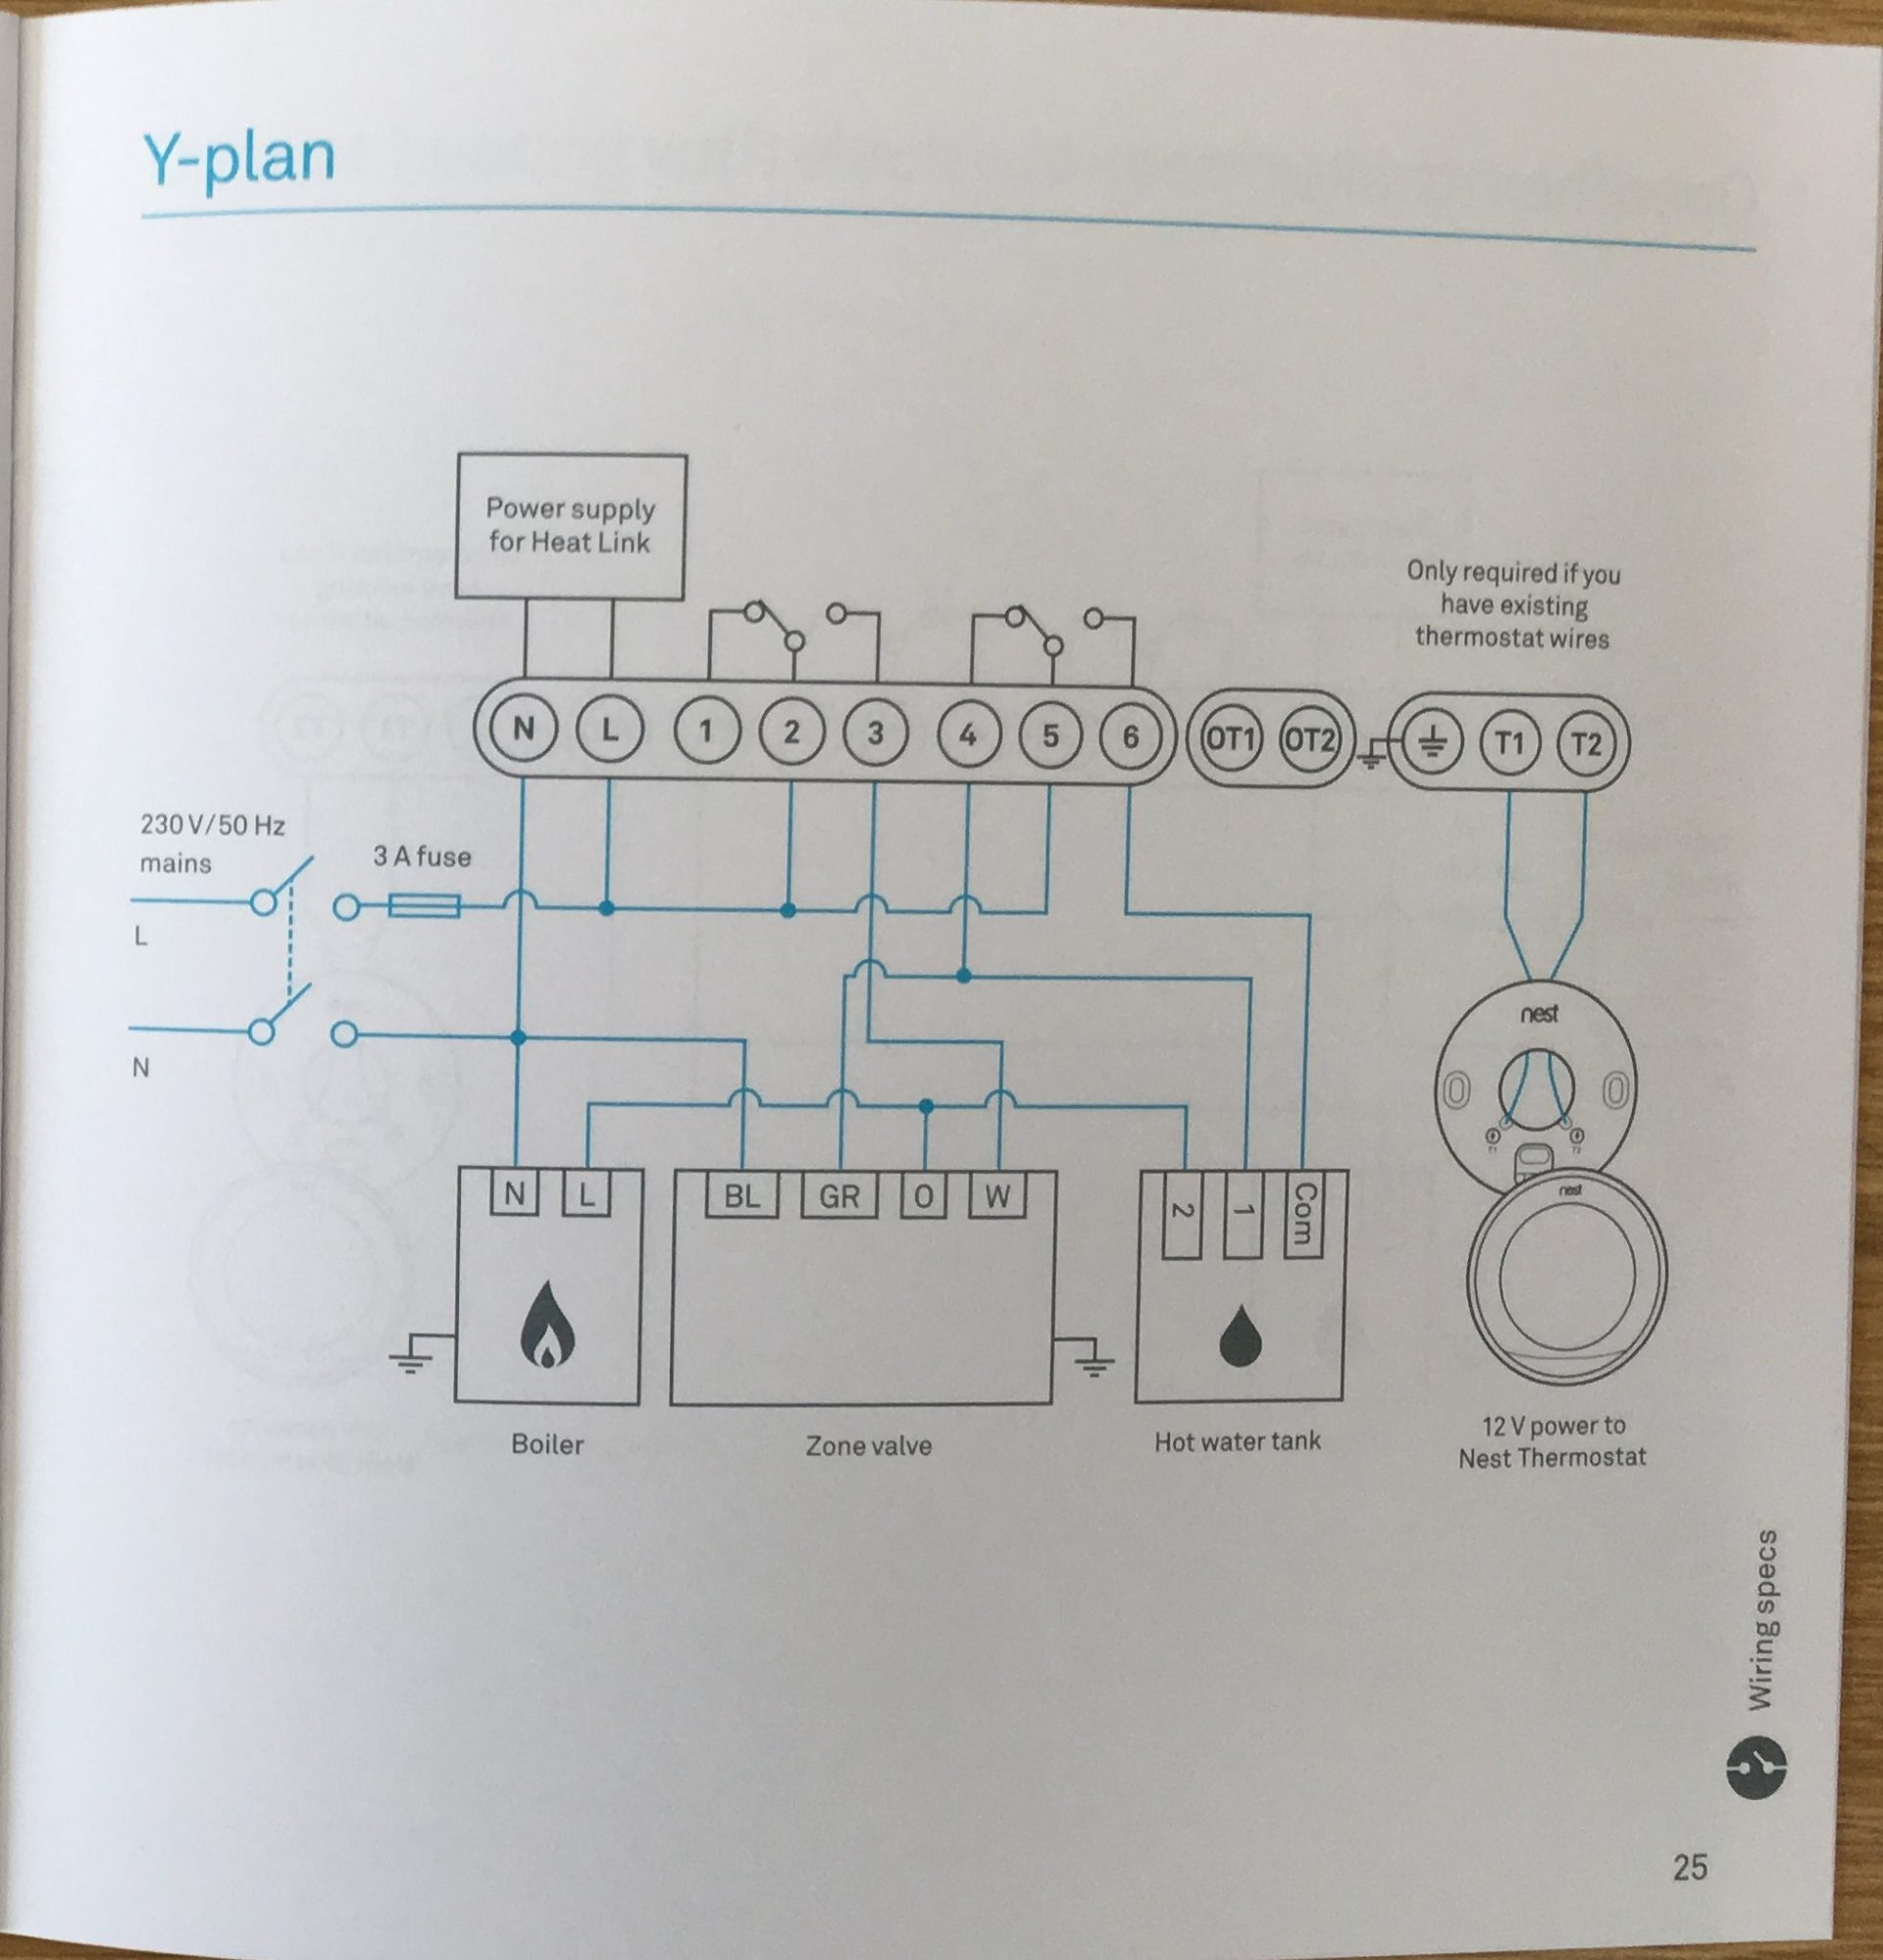 Heating System Diagram On Wiring Diagram For Central Heating Y Plan